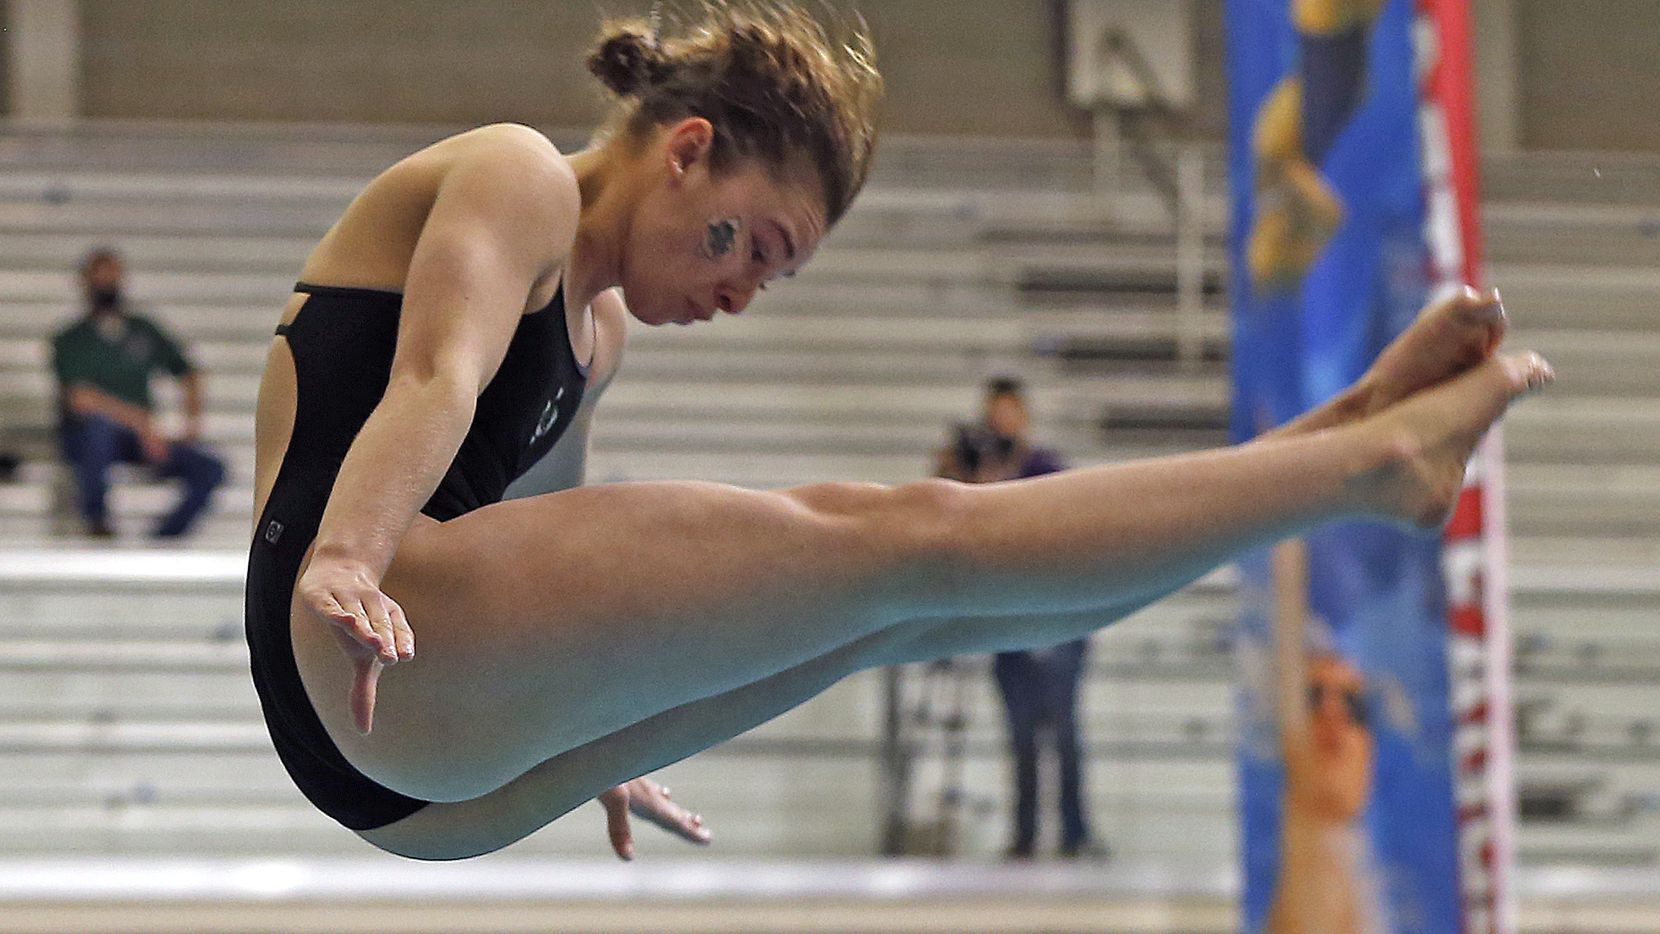 Recent Carroll High School graduate Hailey Hernandez has secured a ticket to the Tokyo Olympics.